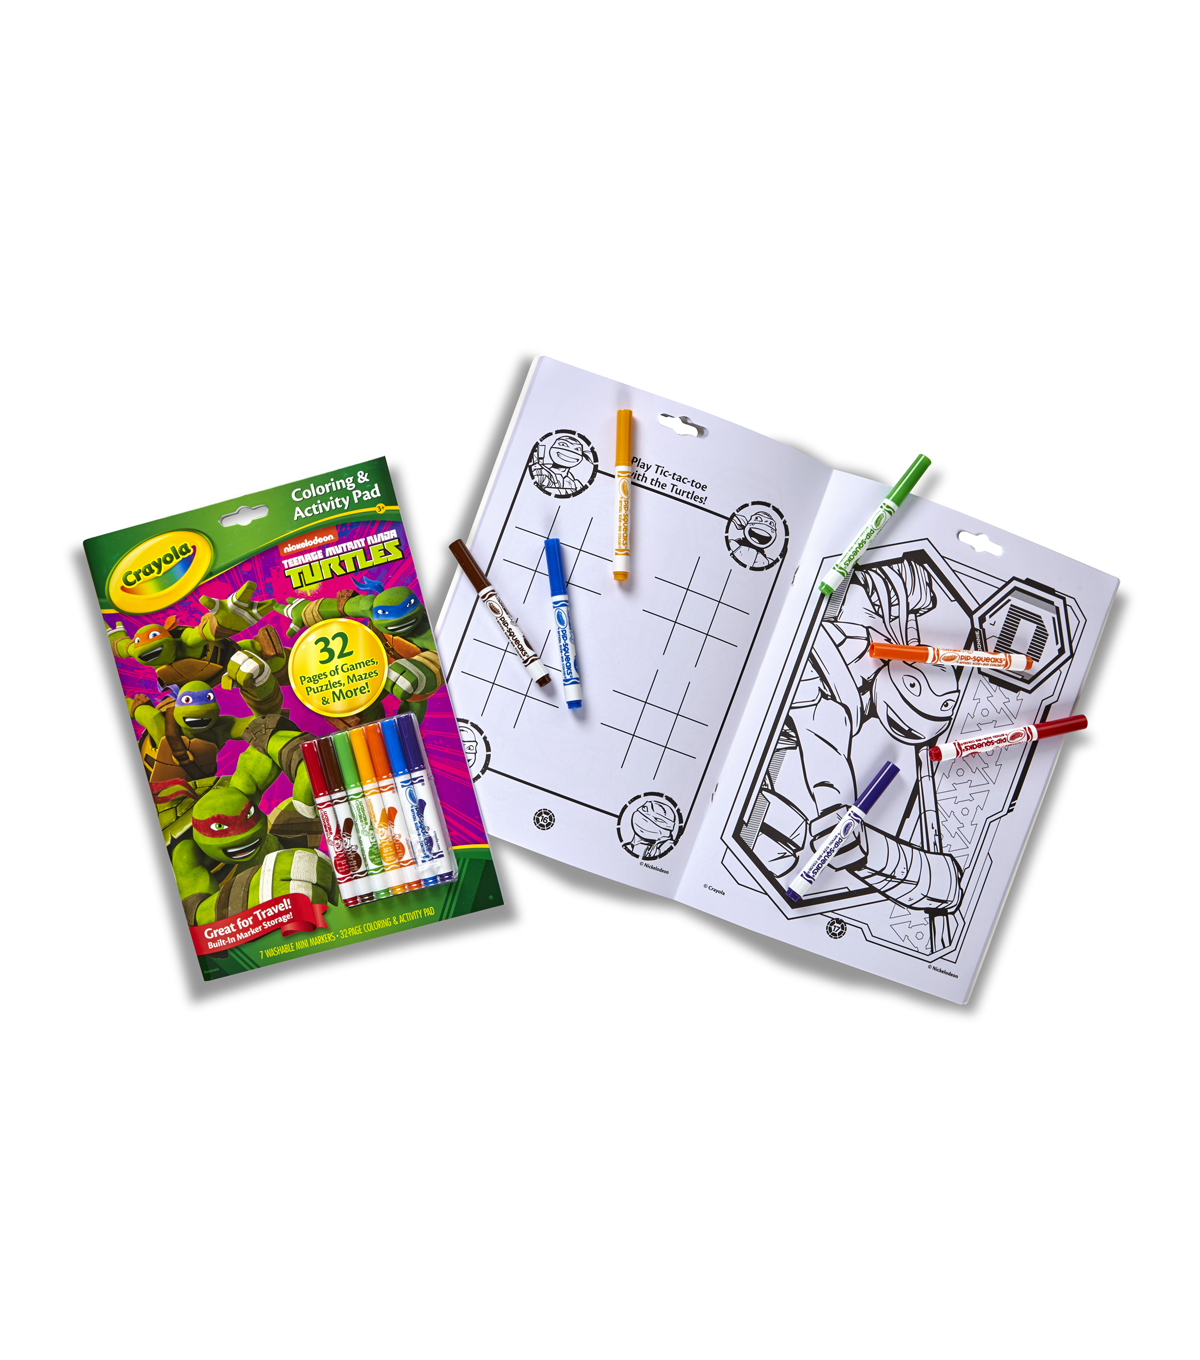 Crayola Coloring And Activity Pad W/Markers-Teenage Mutant Ninja Turtles